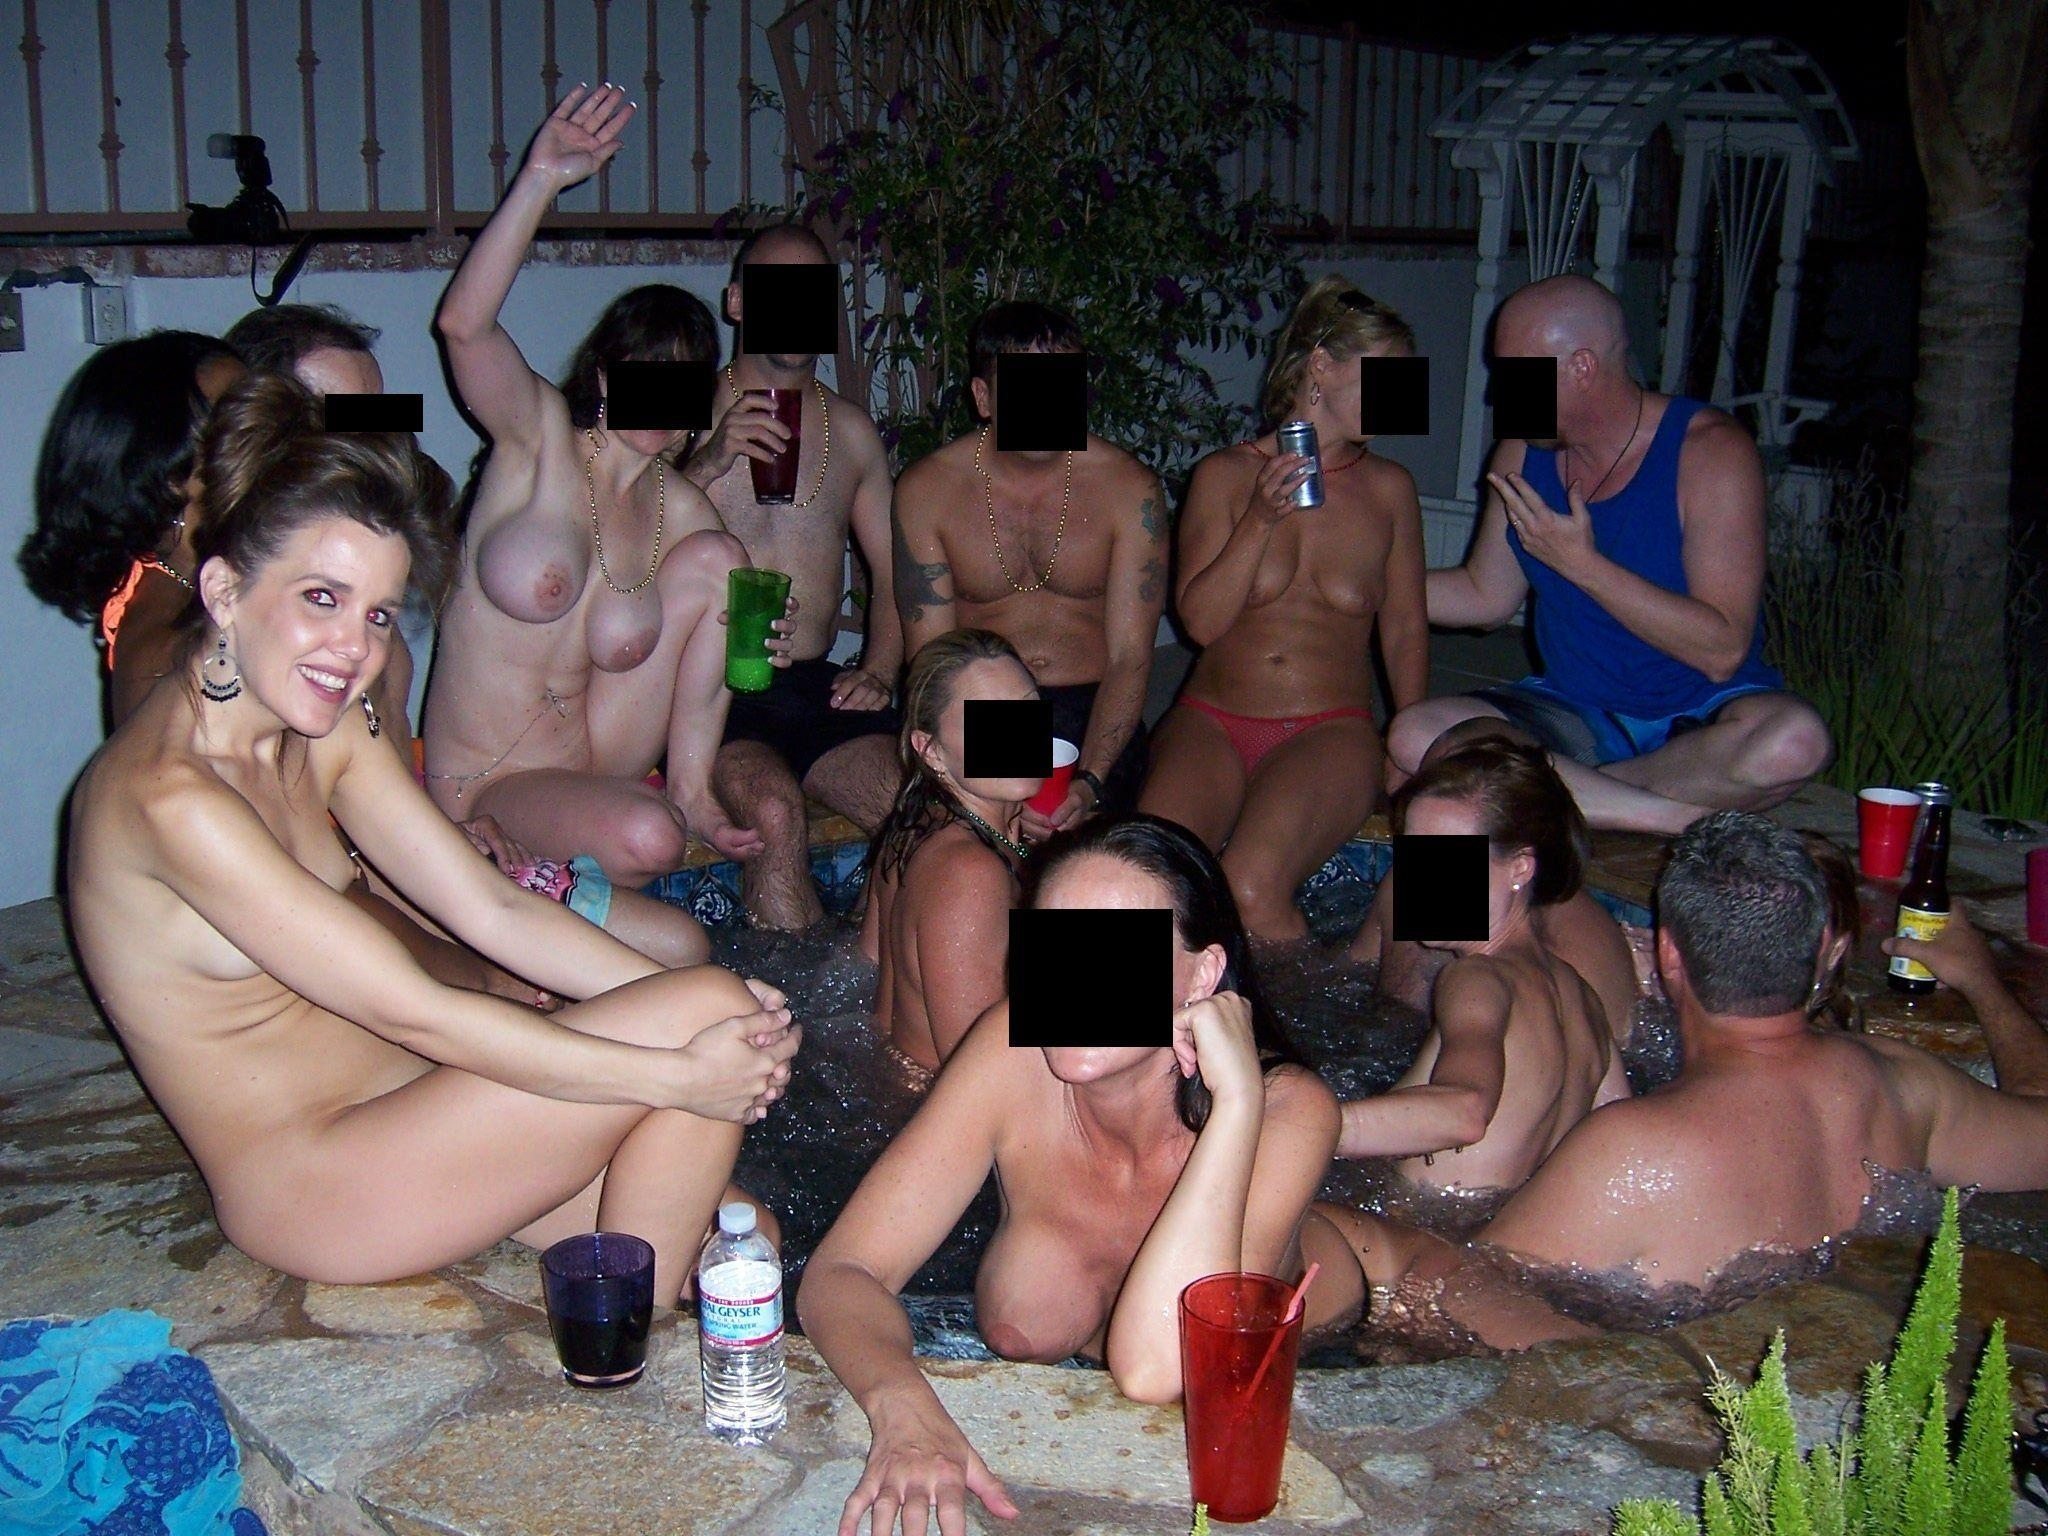 This adult nudist swingers apologise, but